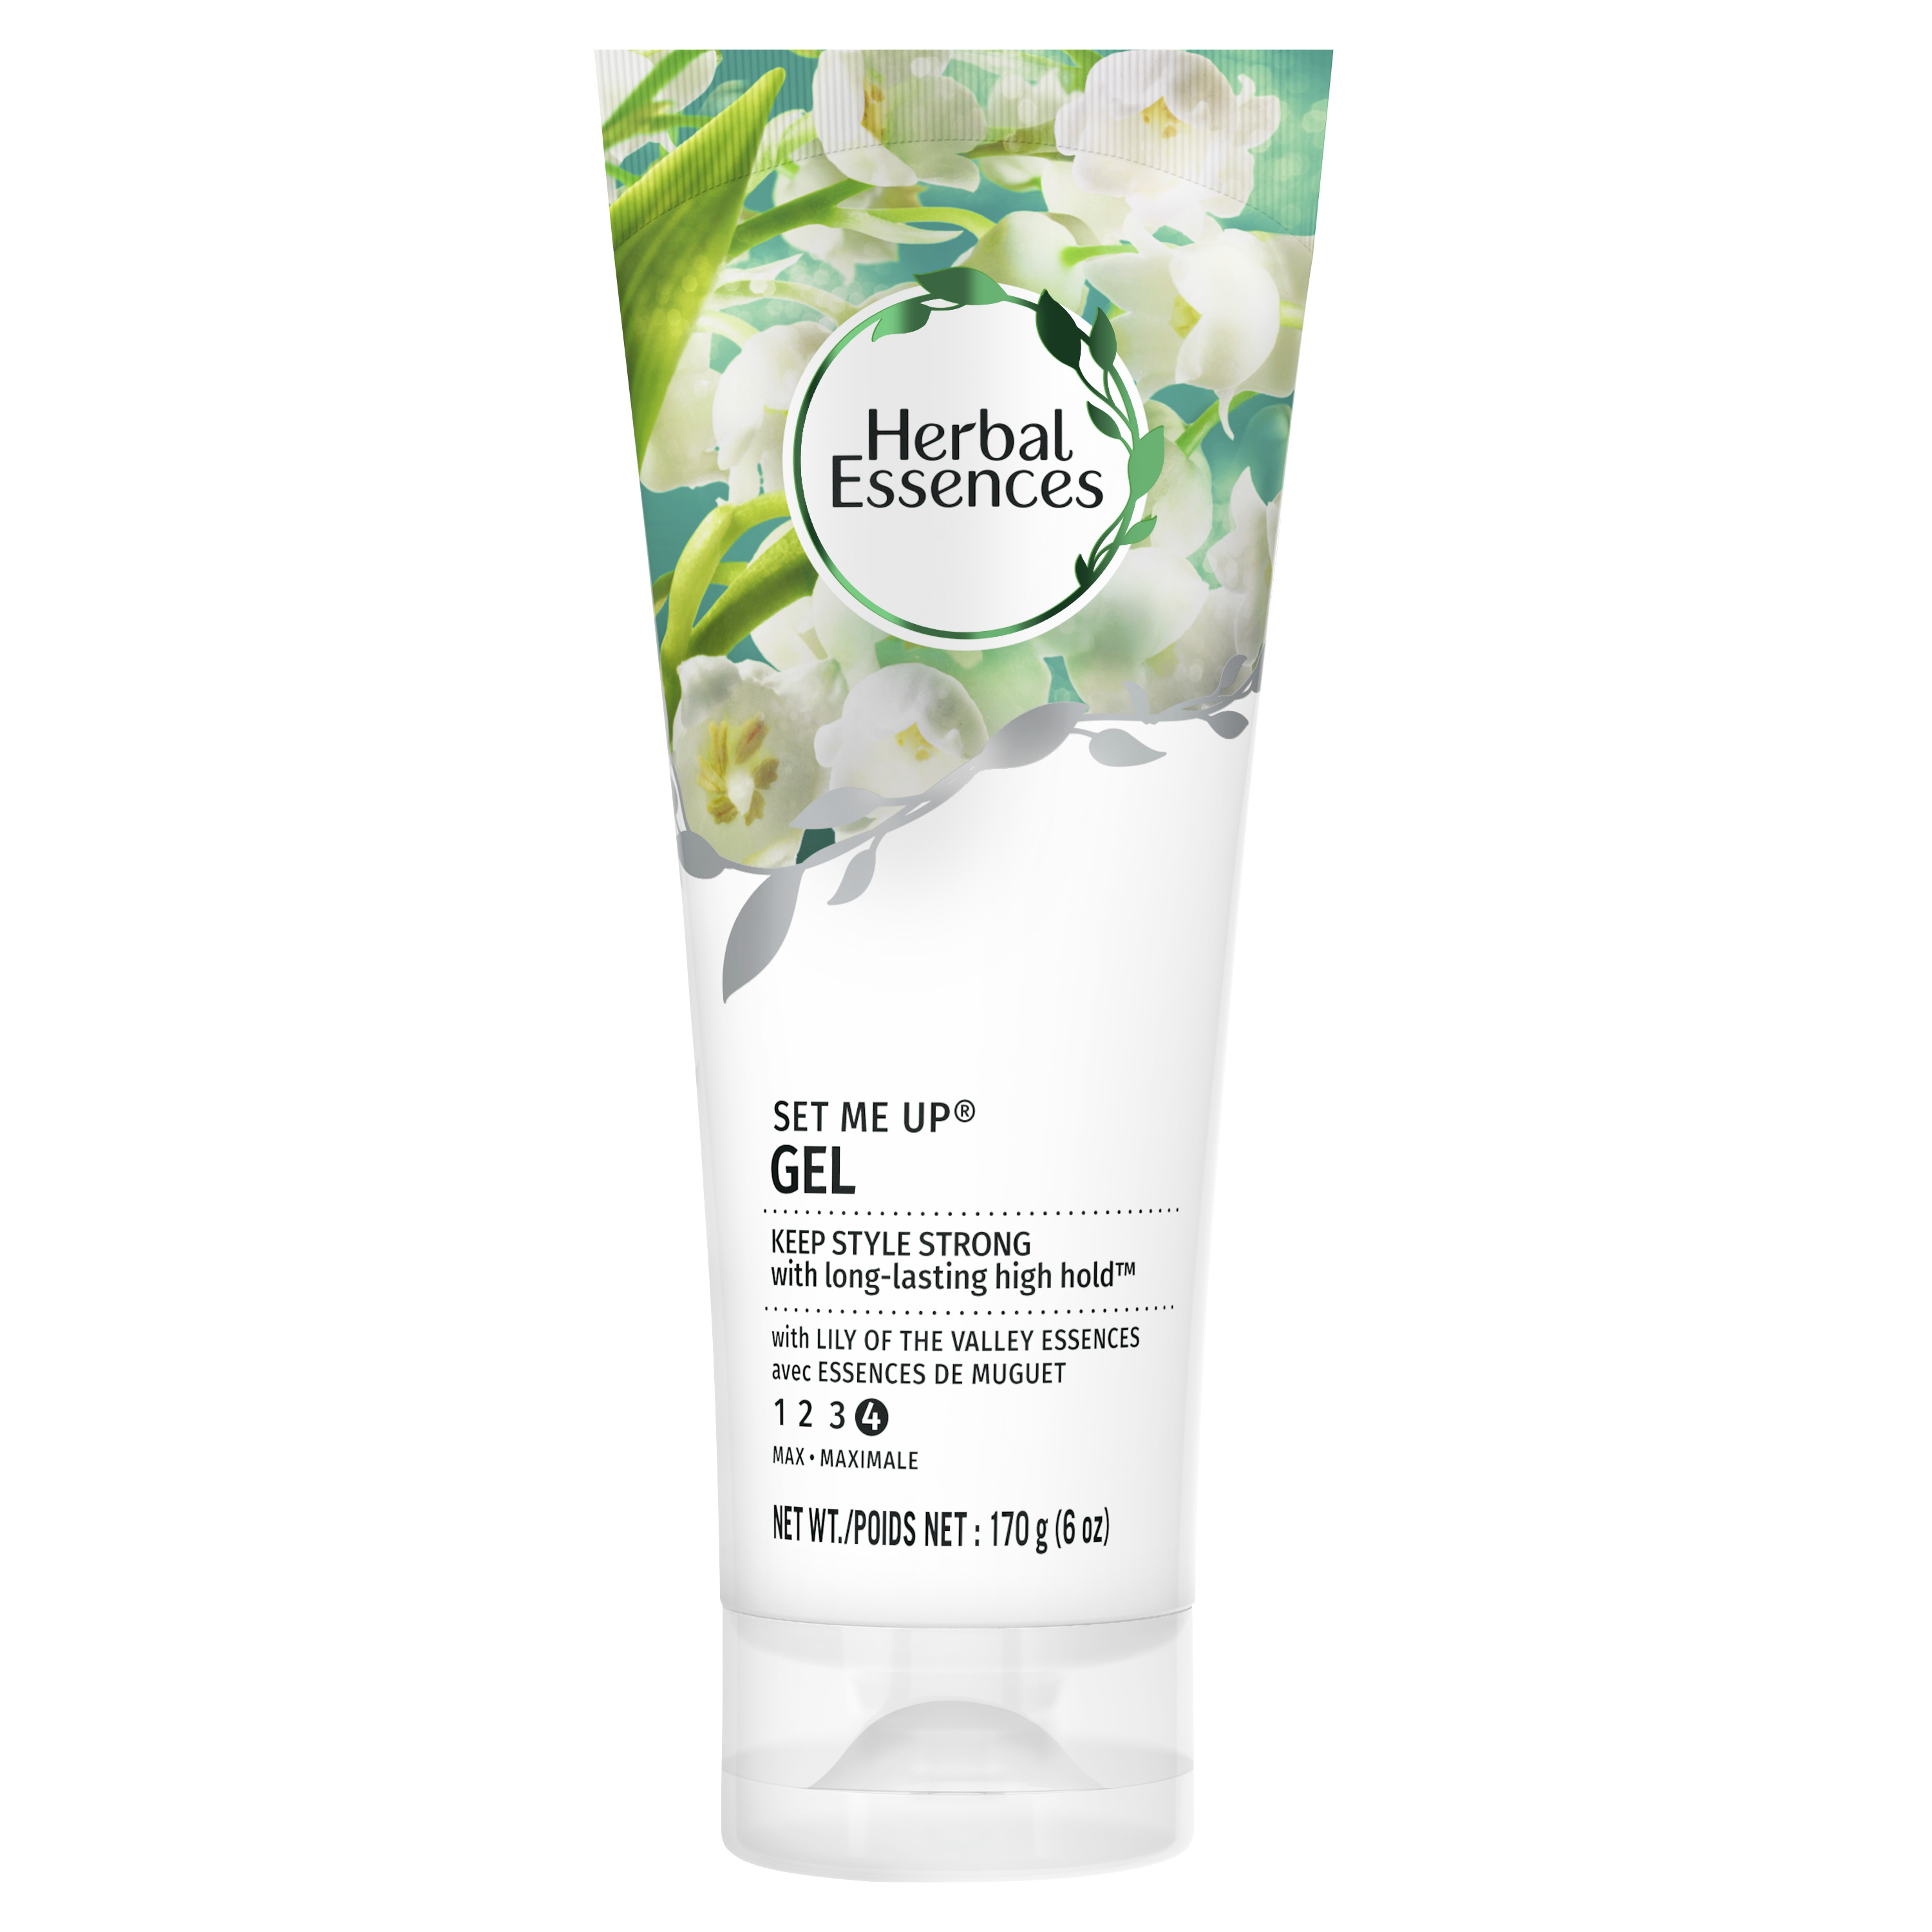 Herbal Essences Set Me Up Maximum Hold Hair Gel with Lily of the Valley Essences, 6 oz